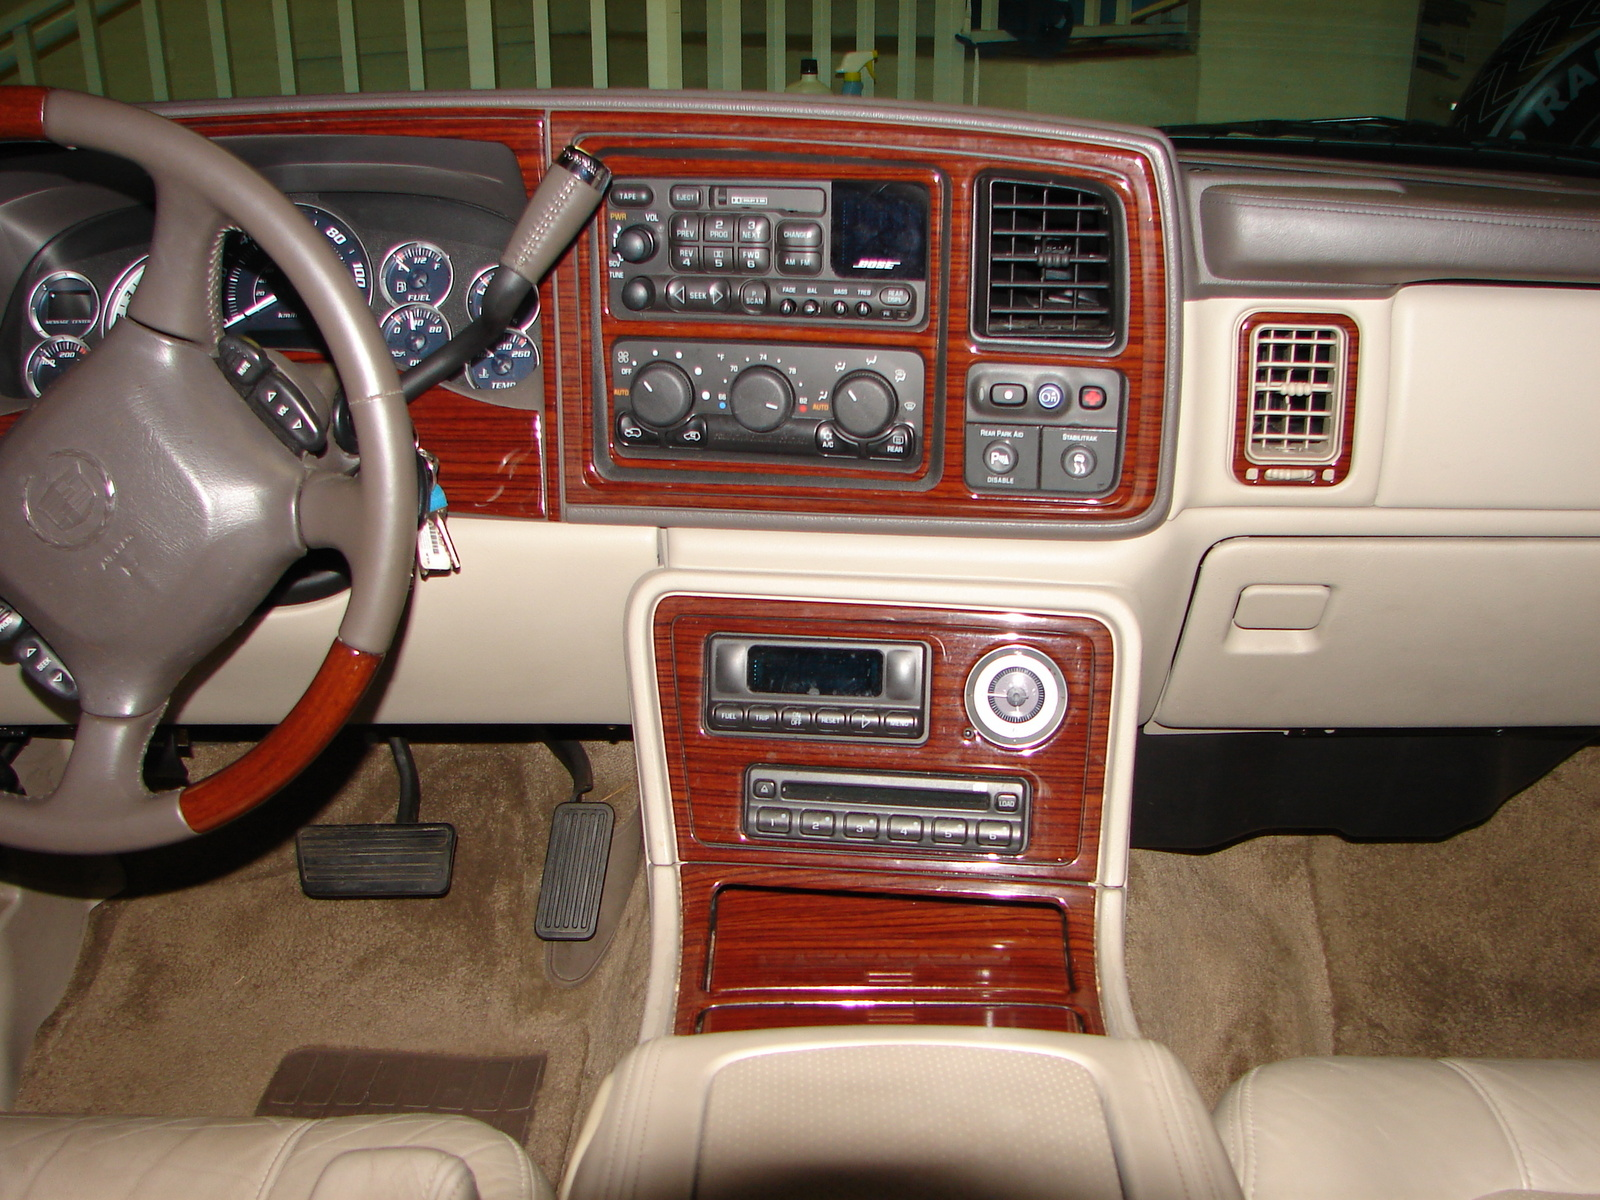 Cadillac Escalade Limousine Wiring Diagram Get Free Image About Wiring Diagram